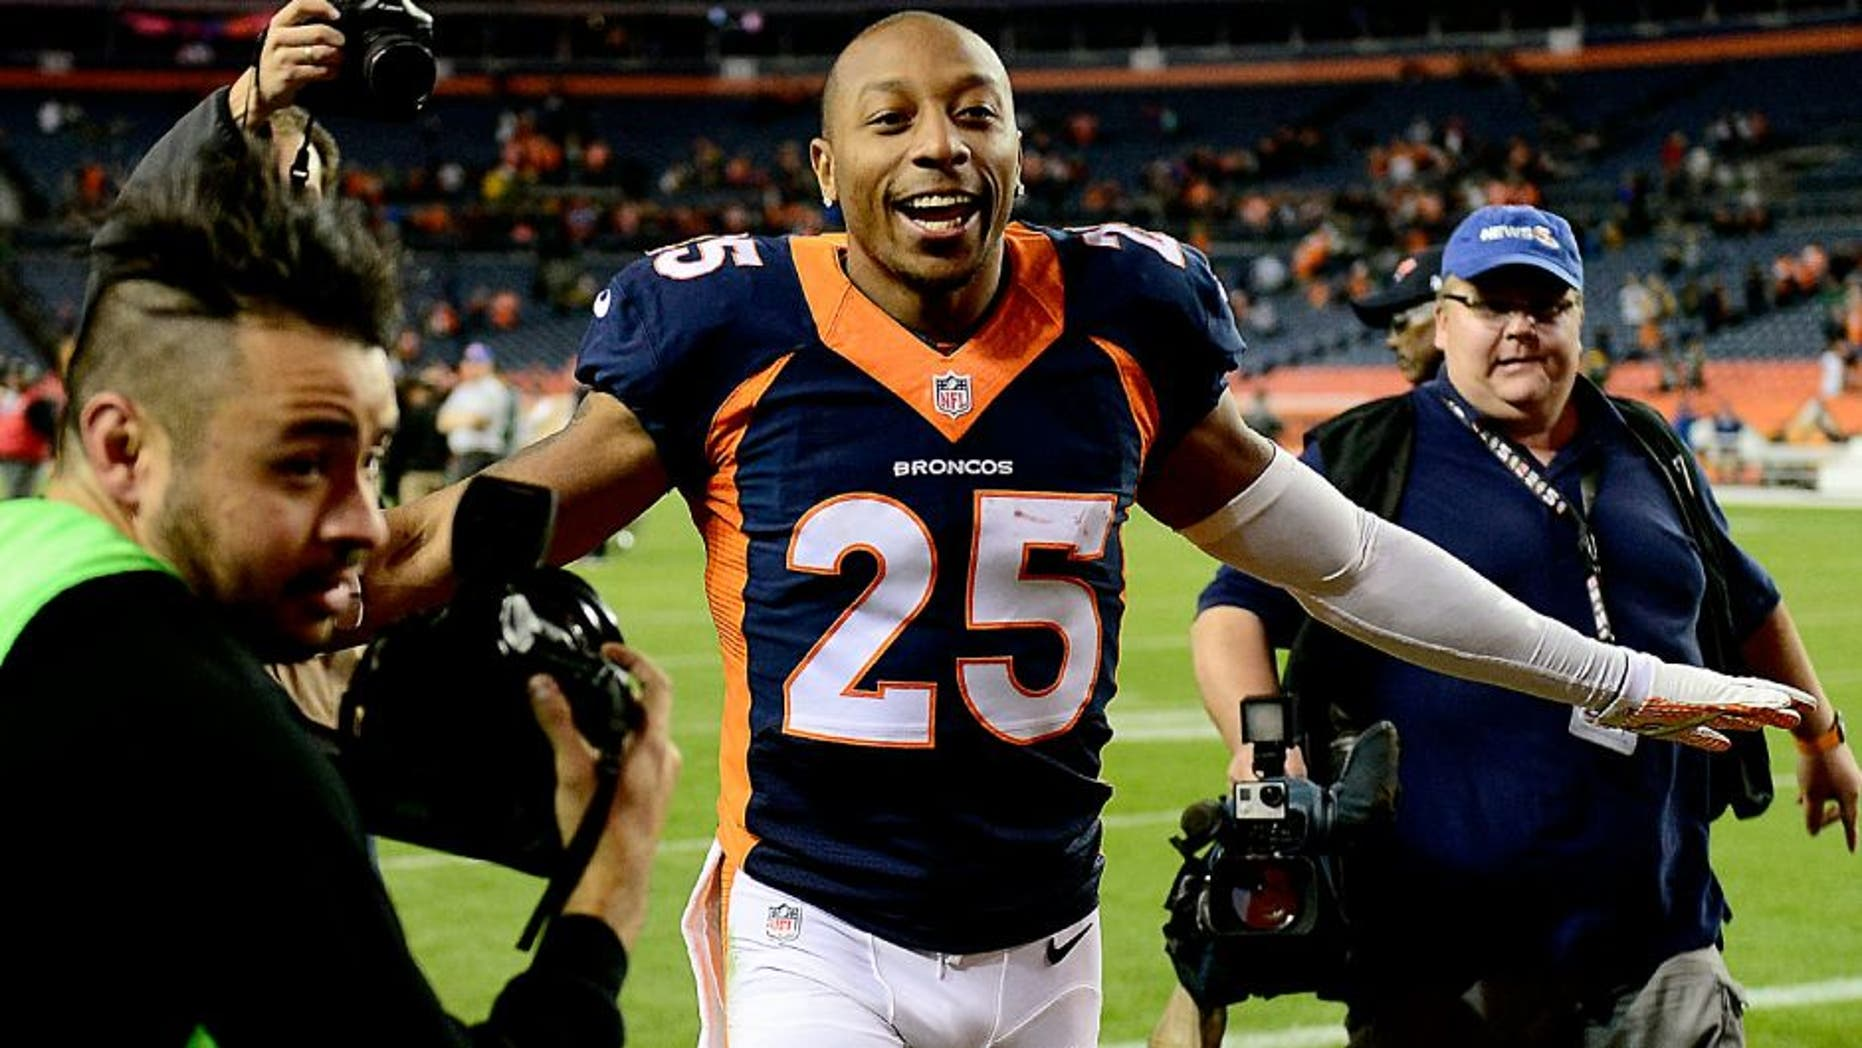 Nov 1, 2015; Denver, CO, USA; Denver Broncos cornerback Chris Harris (25) reacts following the win over the Green Bay Packers at Sports Authority Field at Mile High. The Broncos defeated the Packer 29-10. Mandatory Credit: Ron Chenoy-USA TODAY Sports